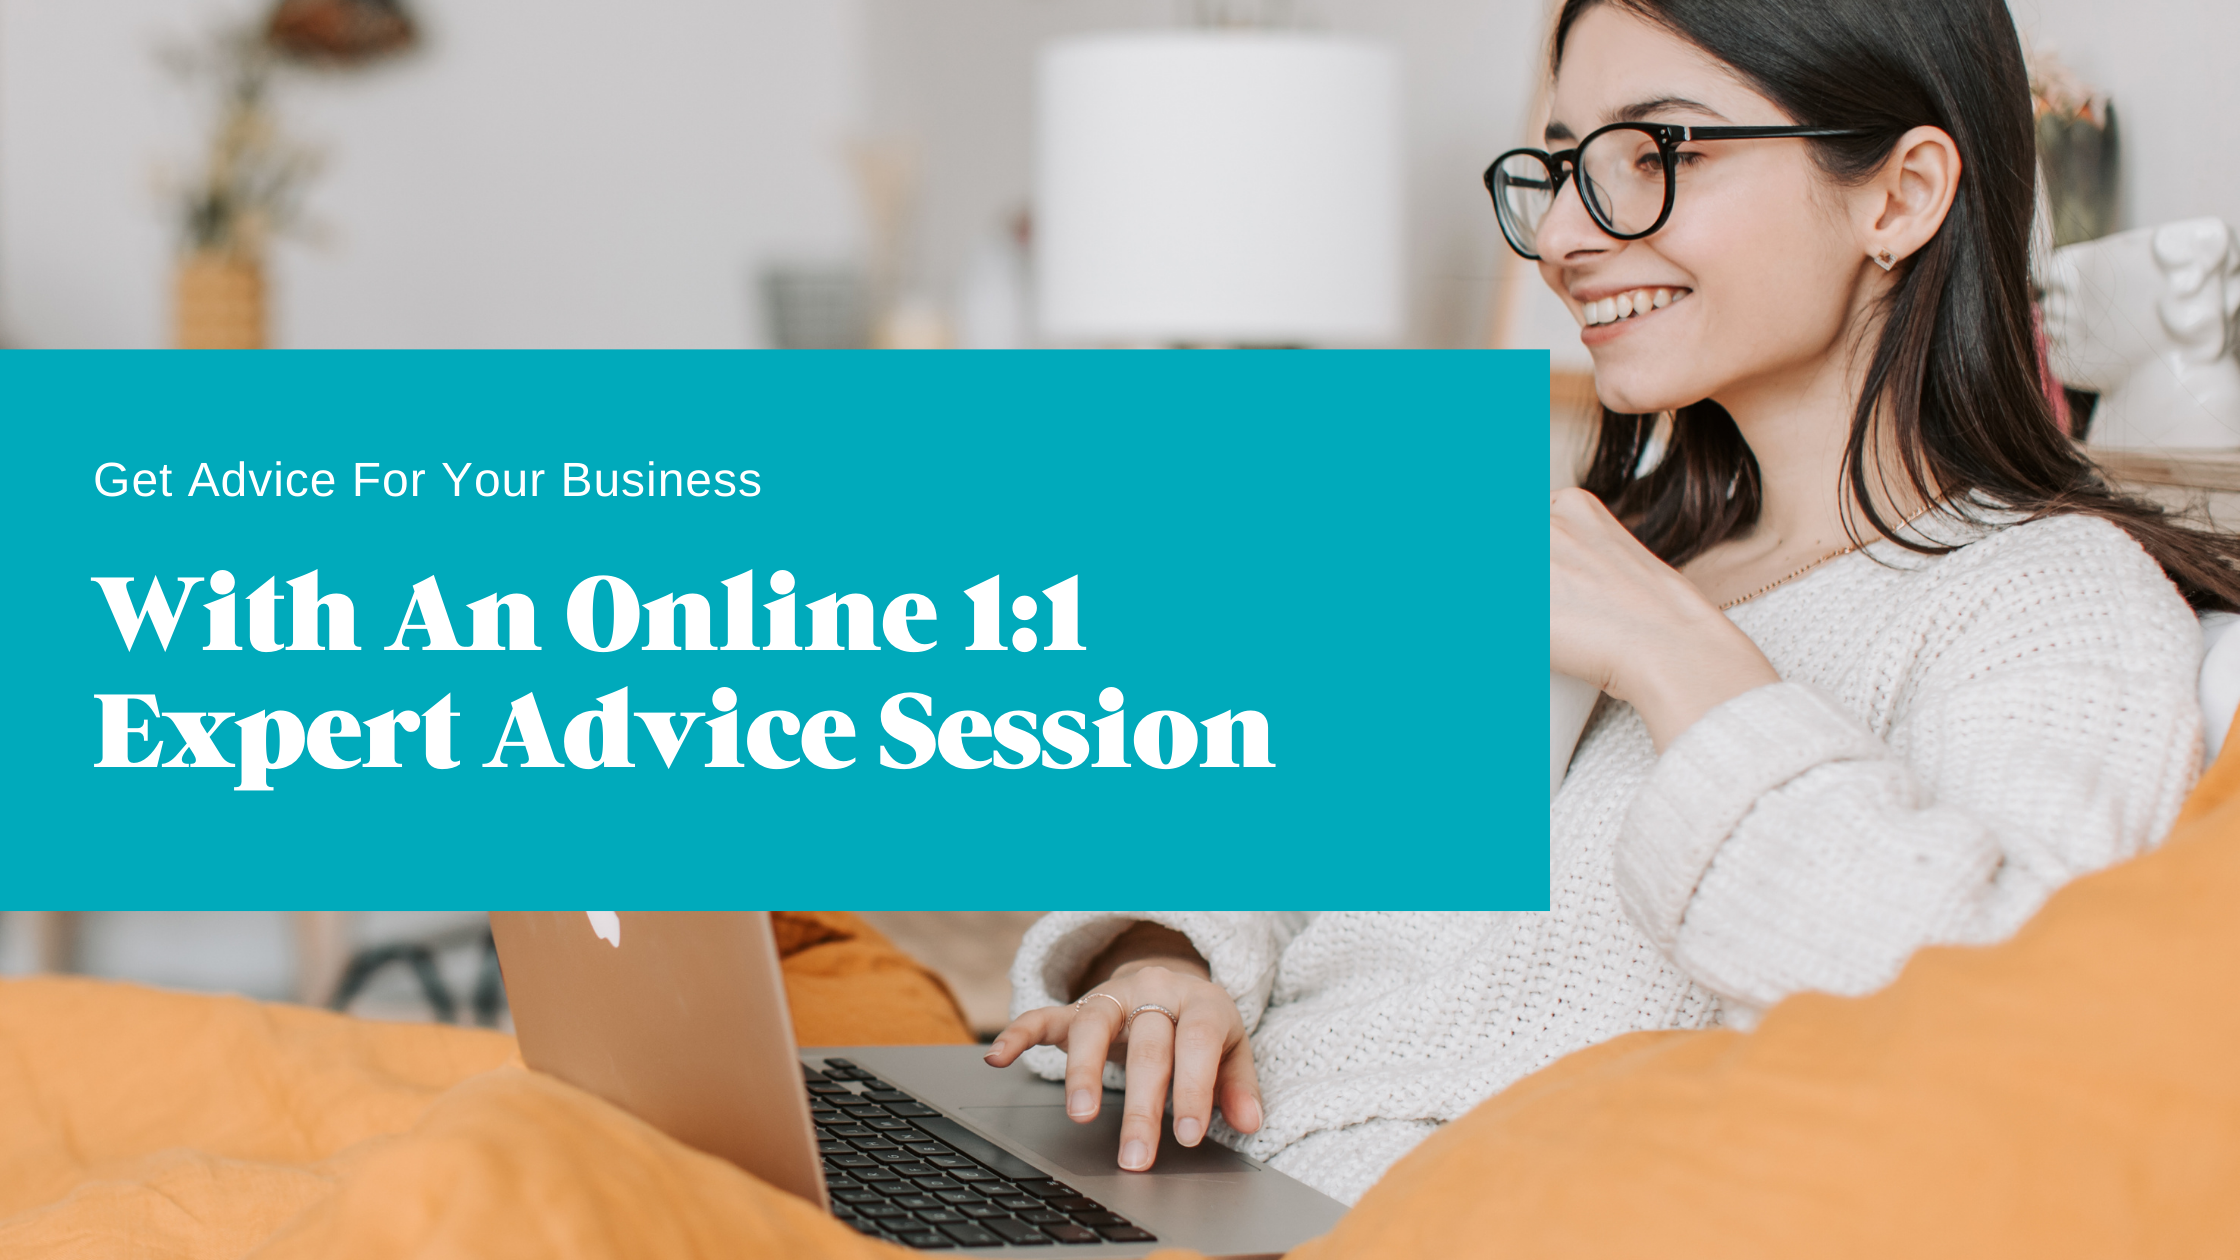 Get help with an online 1:1 expert advice session